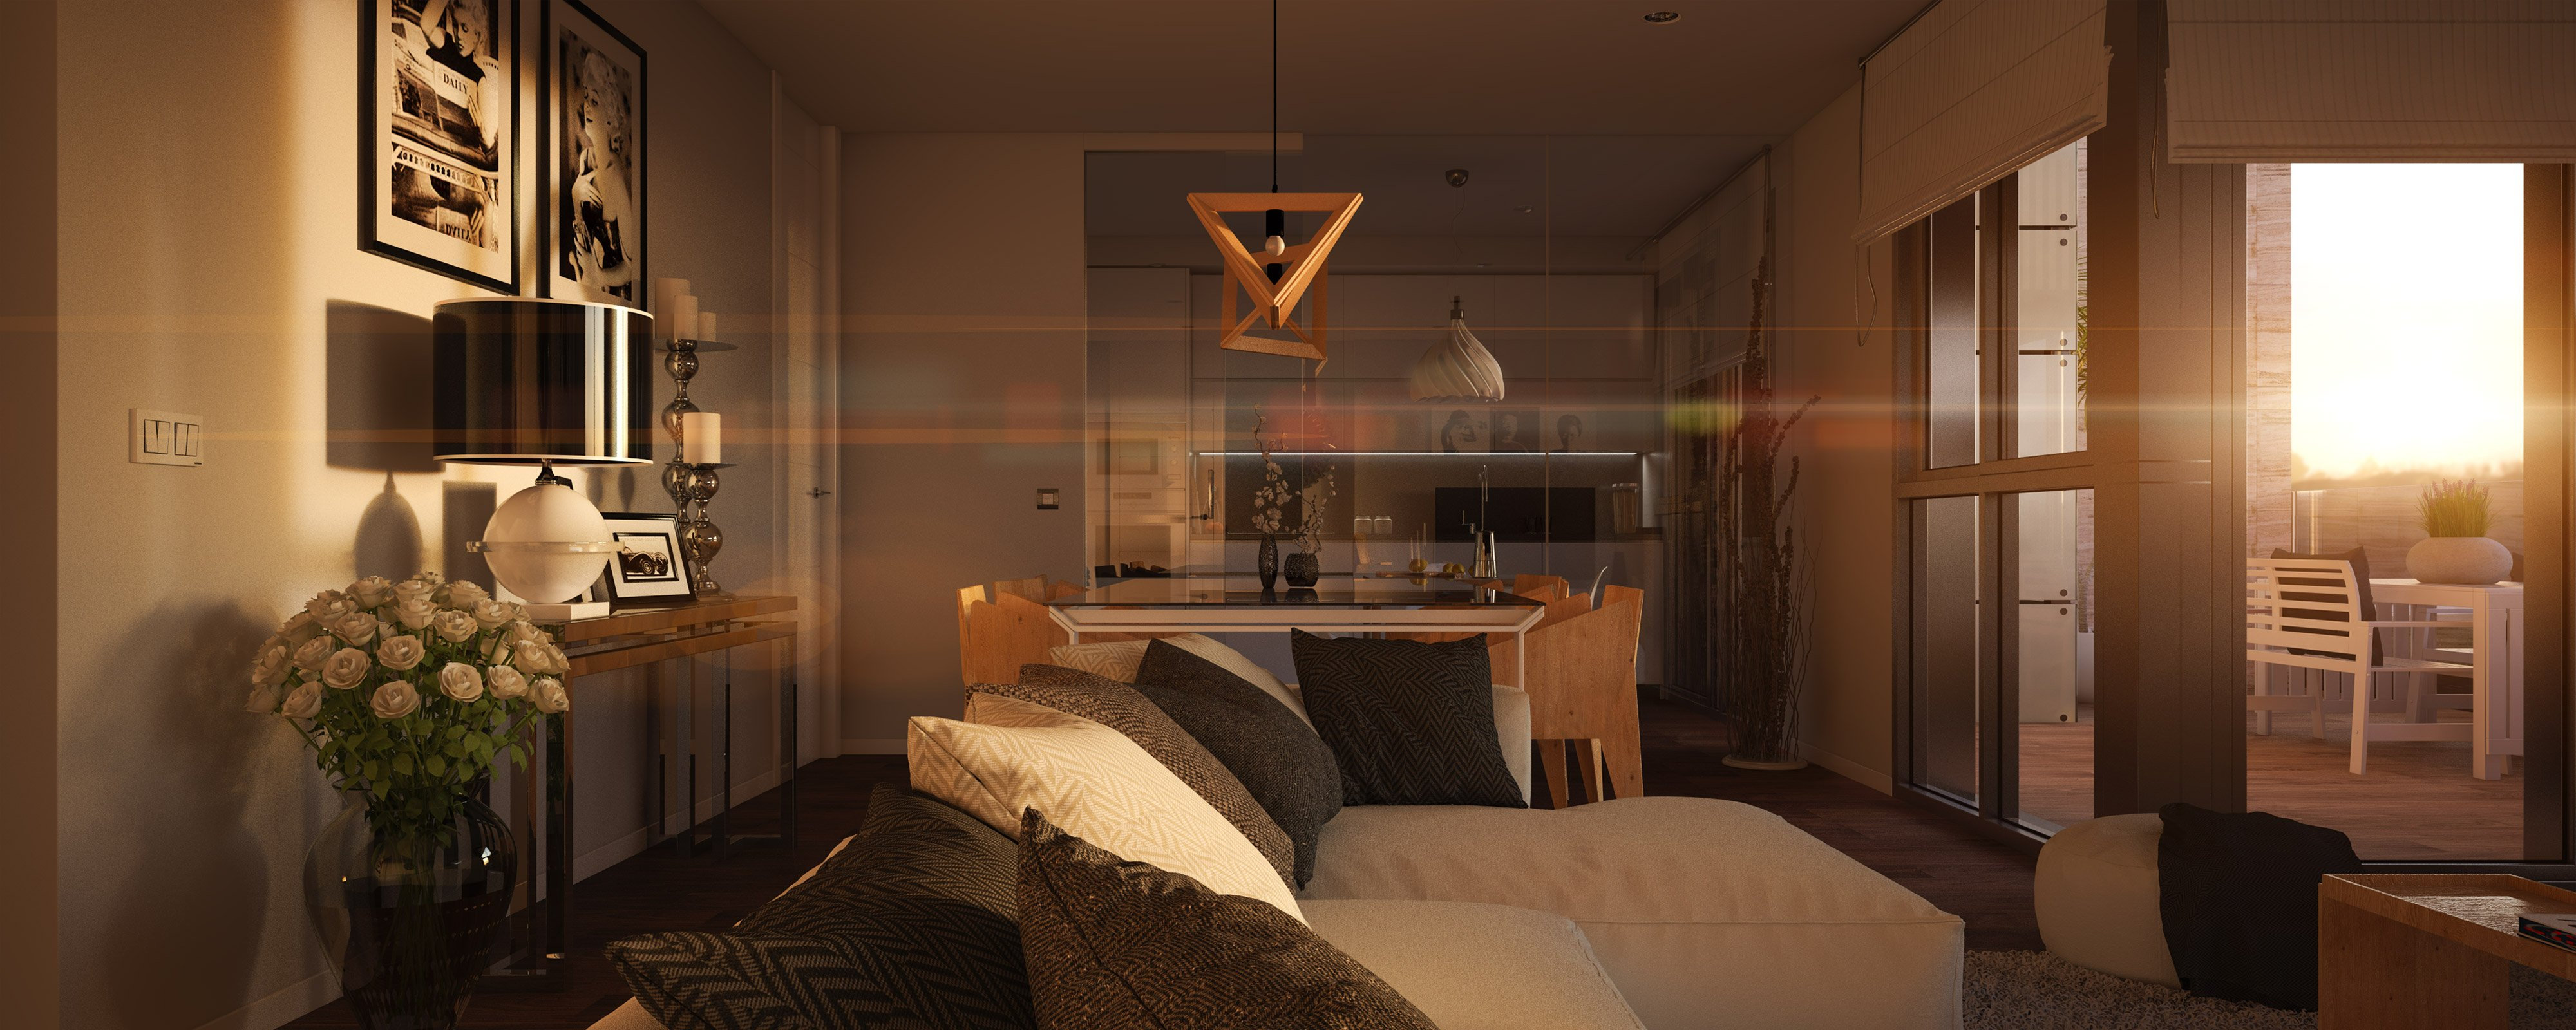 render interior at sunset  of living room at of Greta block of flats by GAYARRE infografia